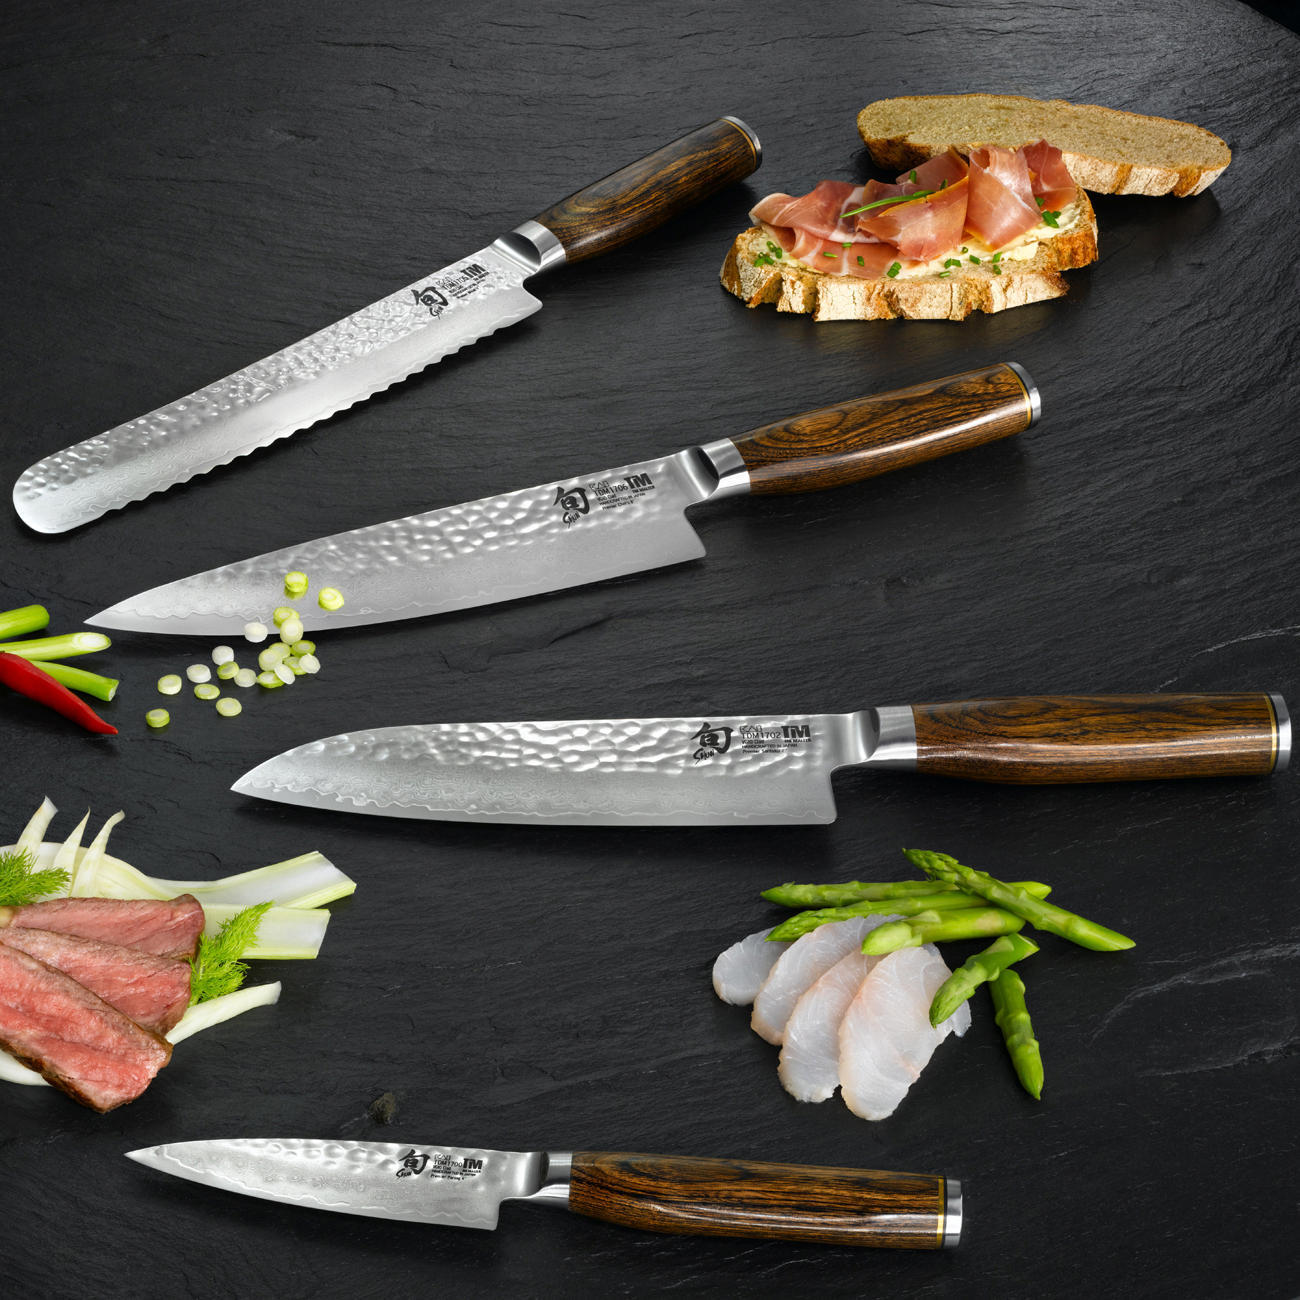 Recommended By The German Celebrity TV Cook Tim Malzer New Damask Steel Knives Series From Traditional Japanese Manufacturer KAI